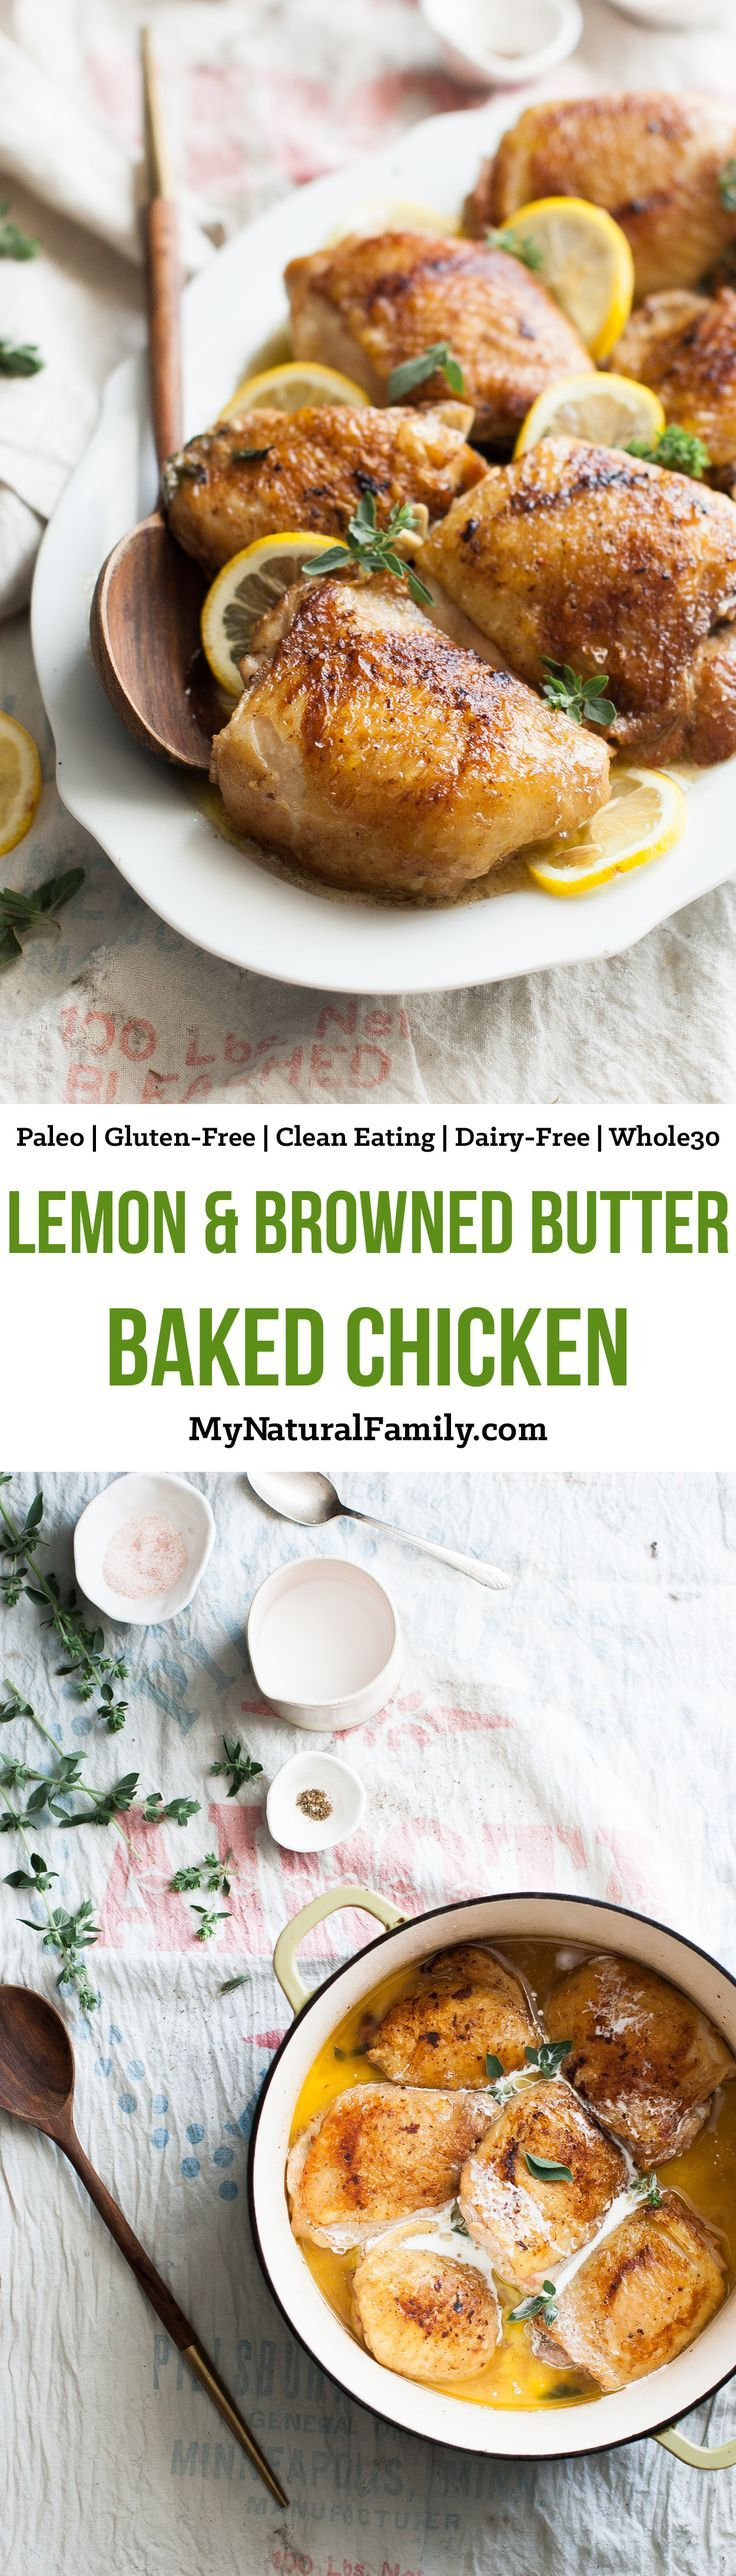 Baked Lemon & Browned Butter Chicken Recipe {Paleo, Gluten-Free, Clean Eating, Whole30, Dairy-Free} - I love how I can do anything while this bakes and how it makes a delicious lemon butter sauce right in the pan.